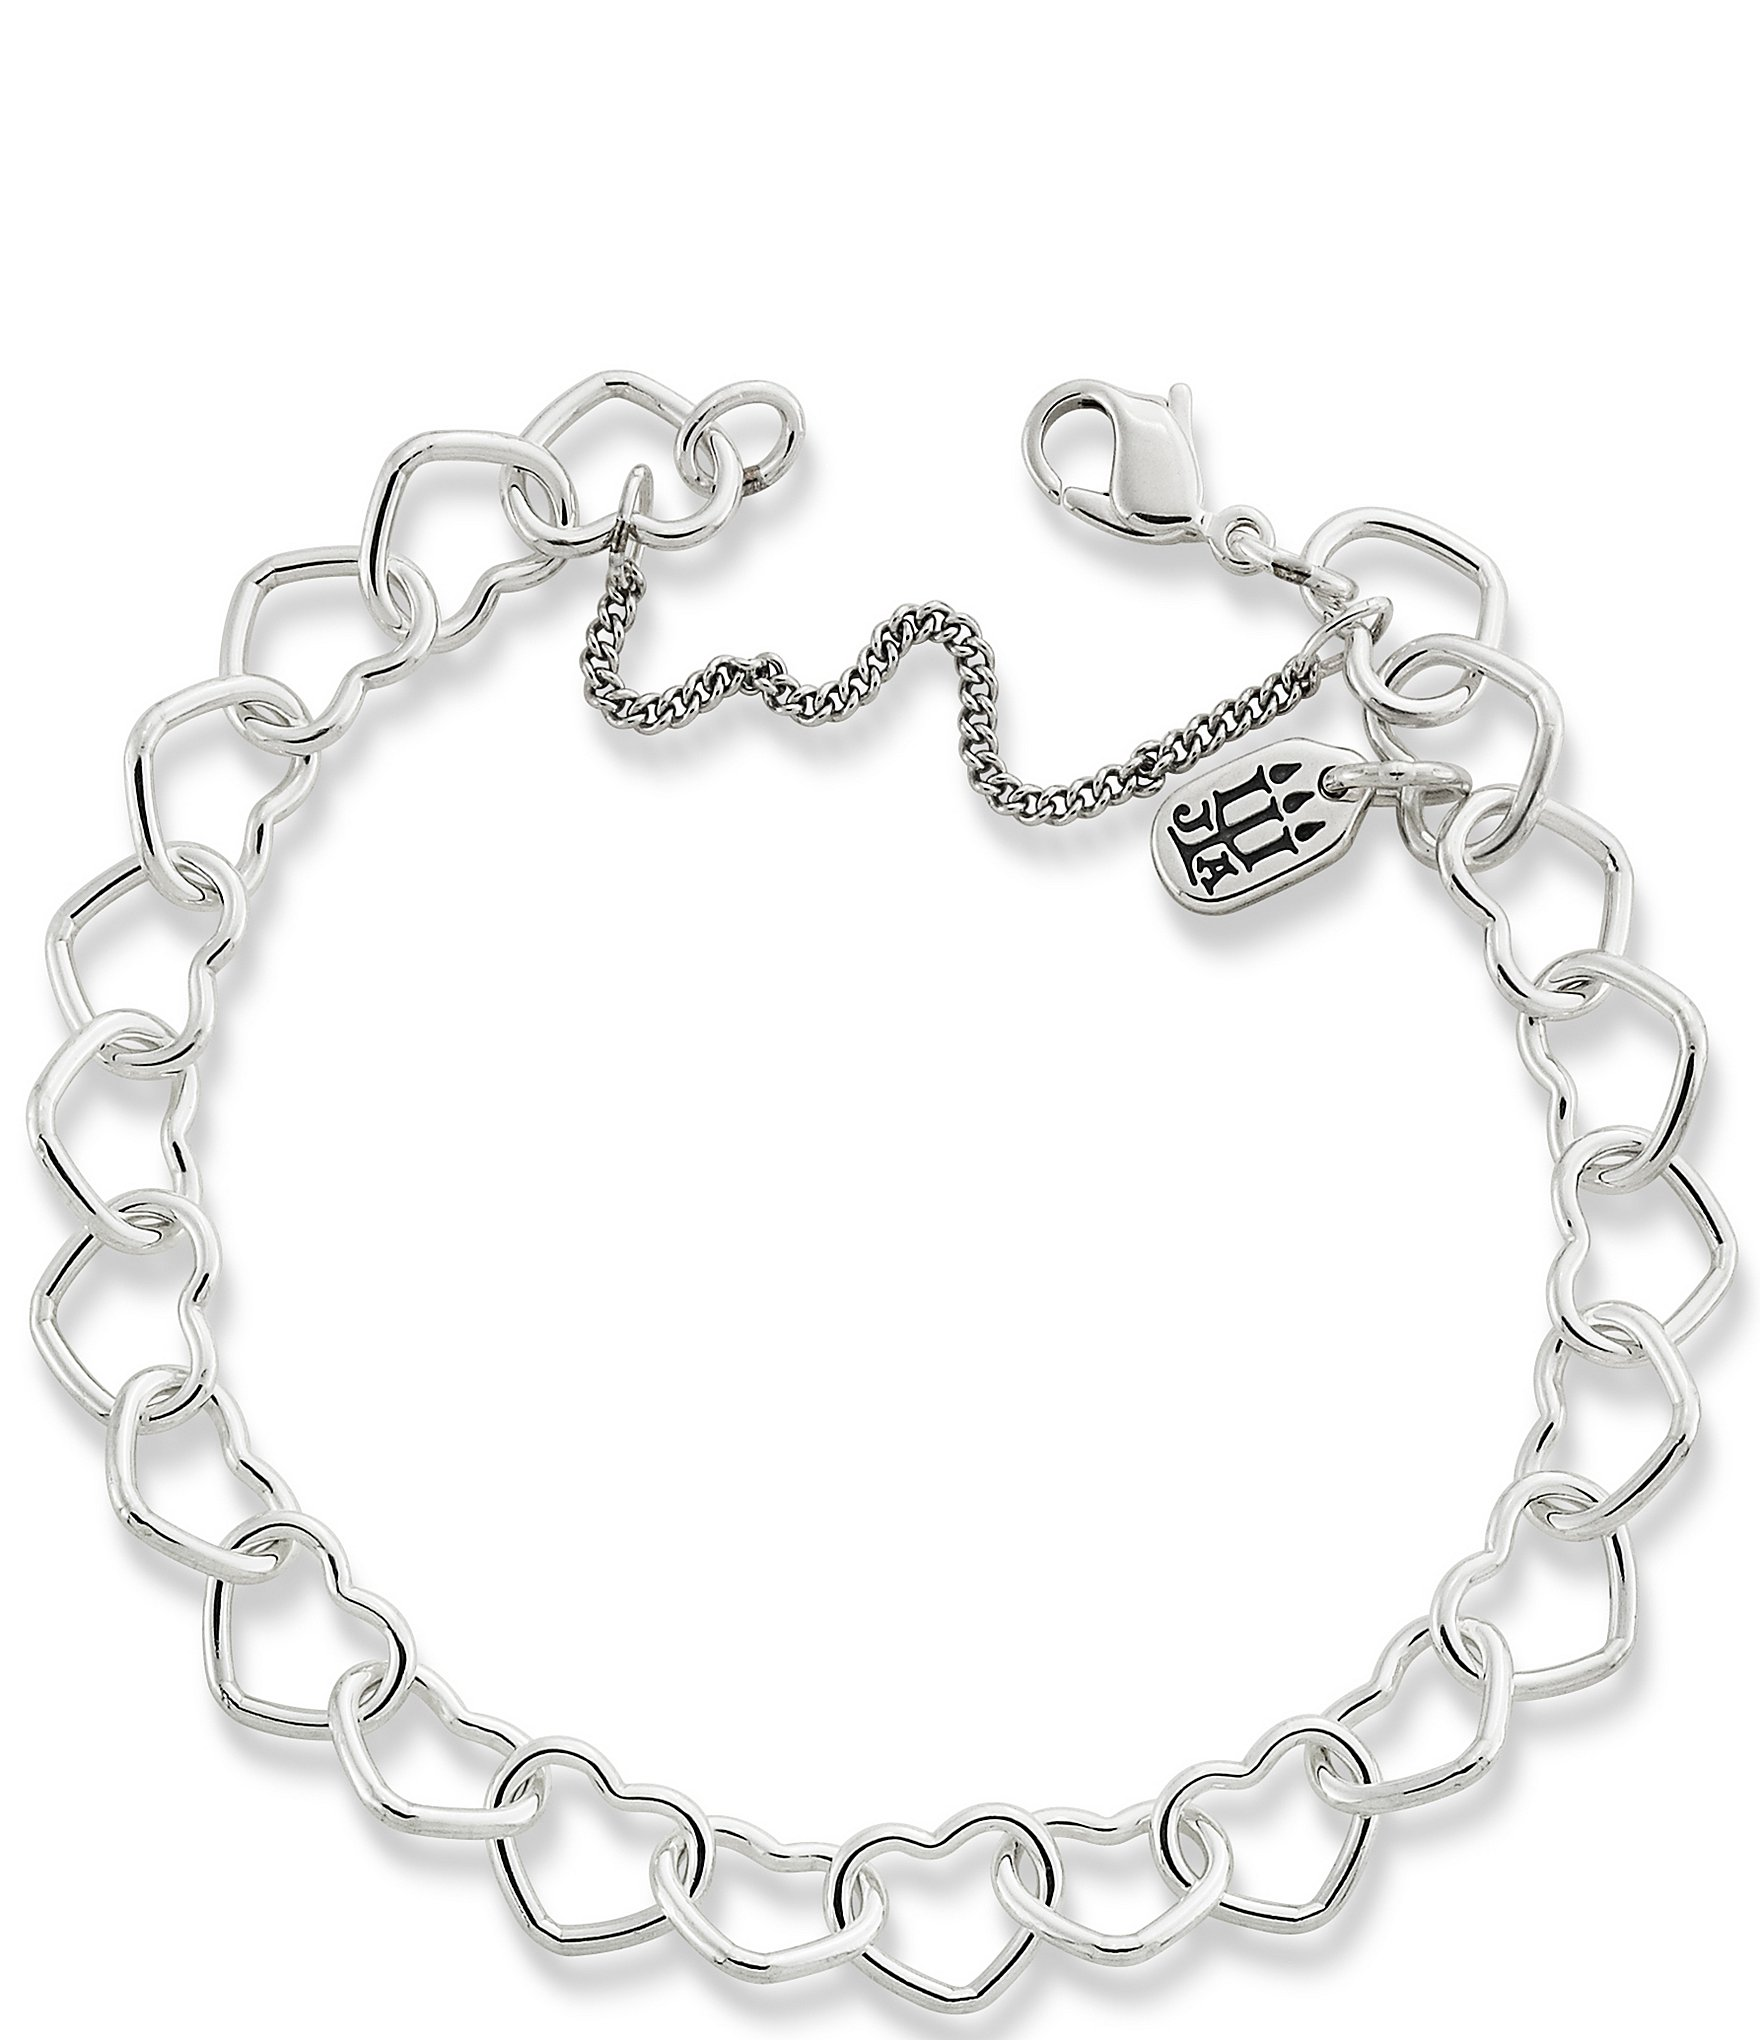 a96677eb0da84 James Avery Sterling Silver Connected Hearts Charm Bracelet